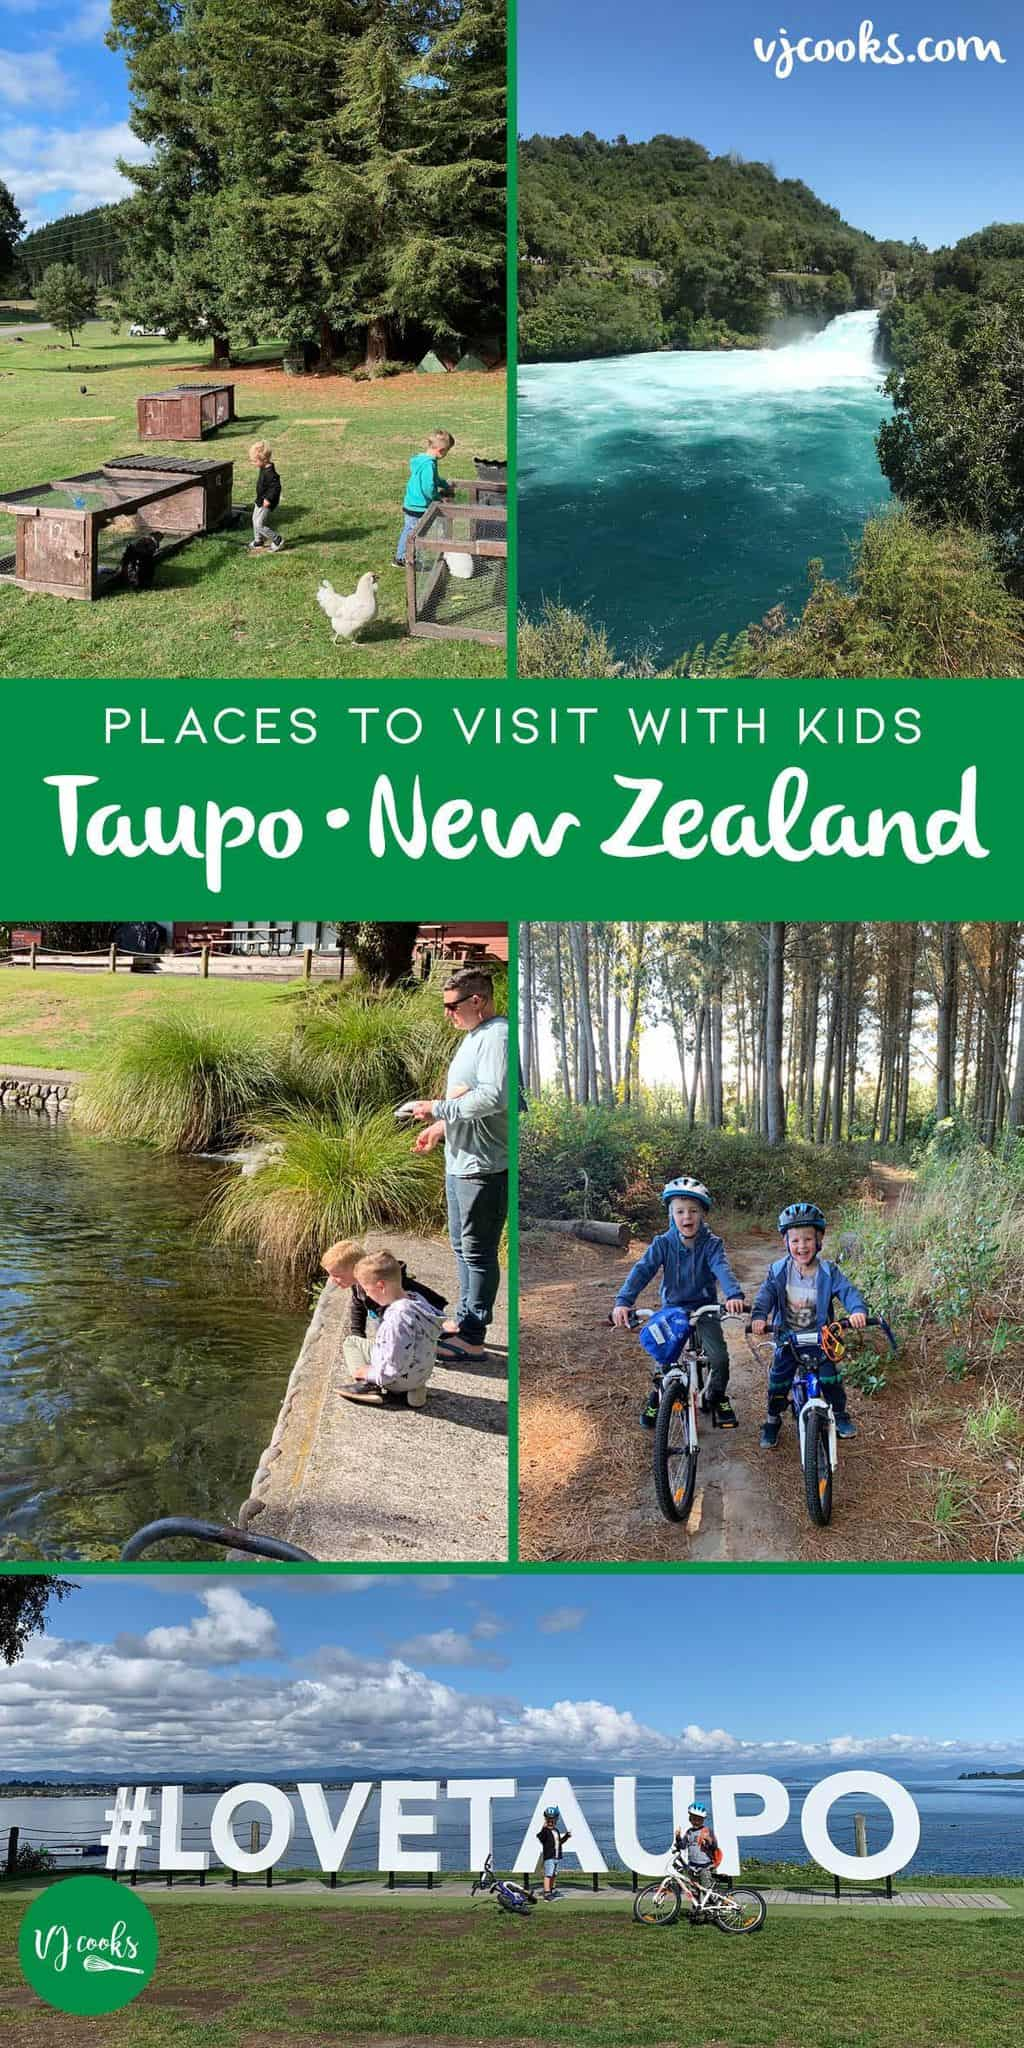 Taupo activities - Places to visit with kids - New zealand - free